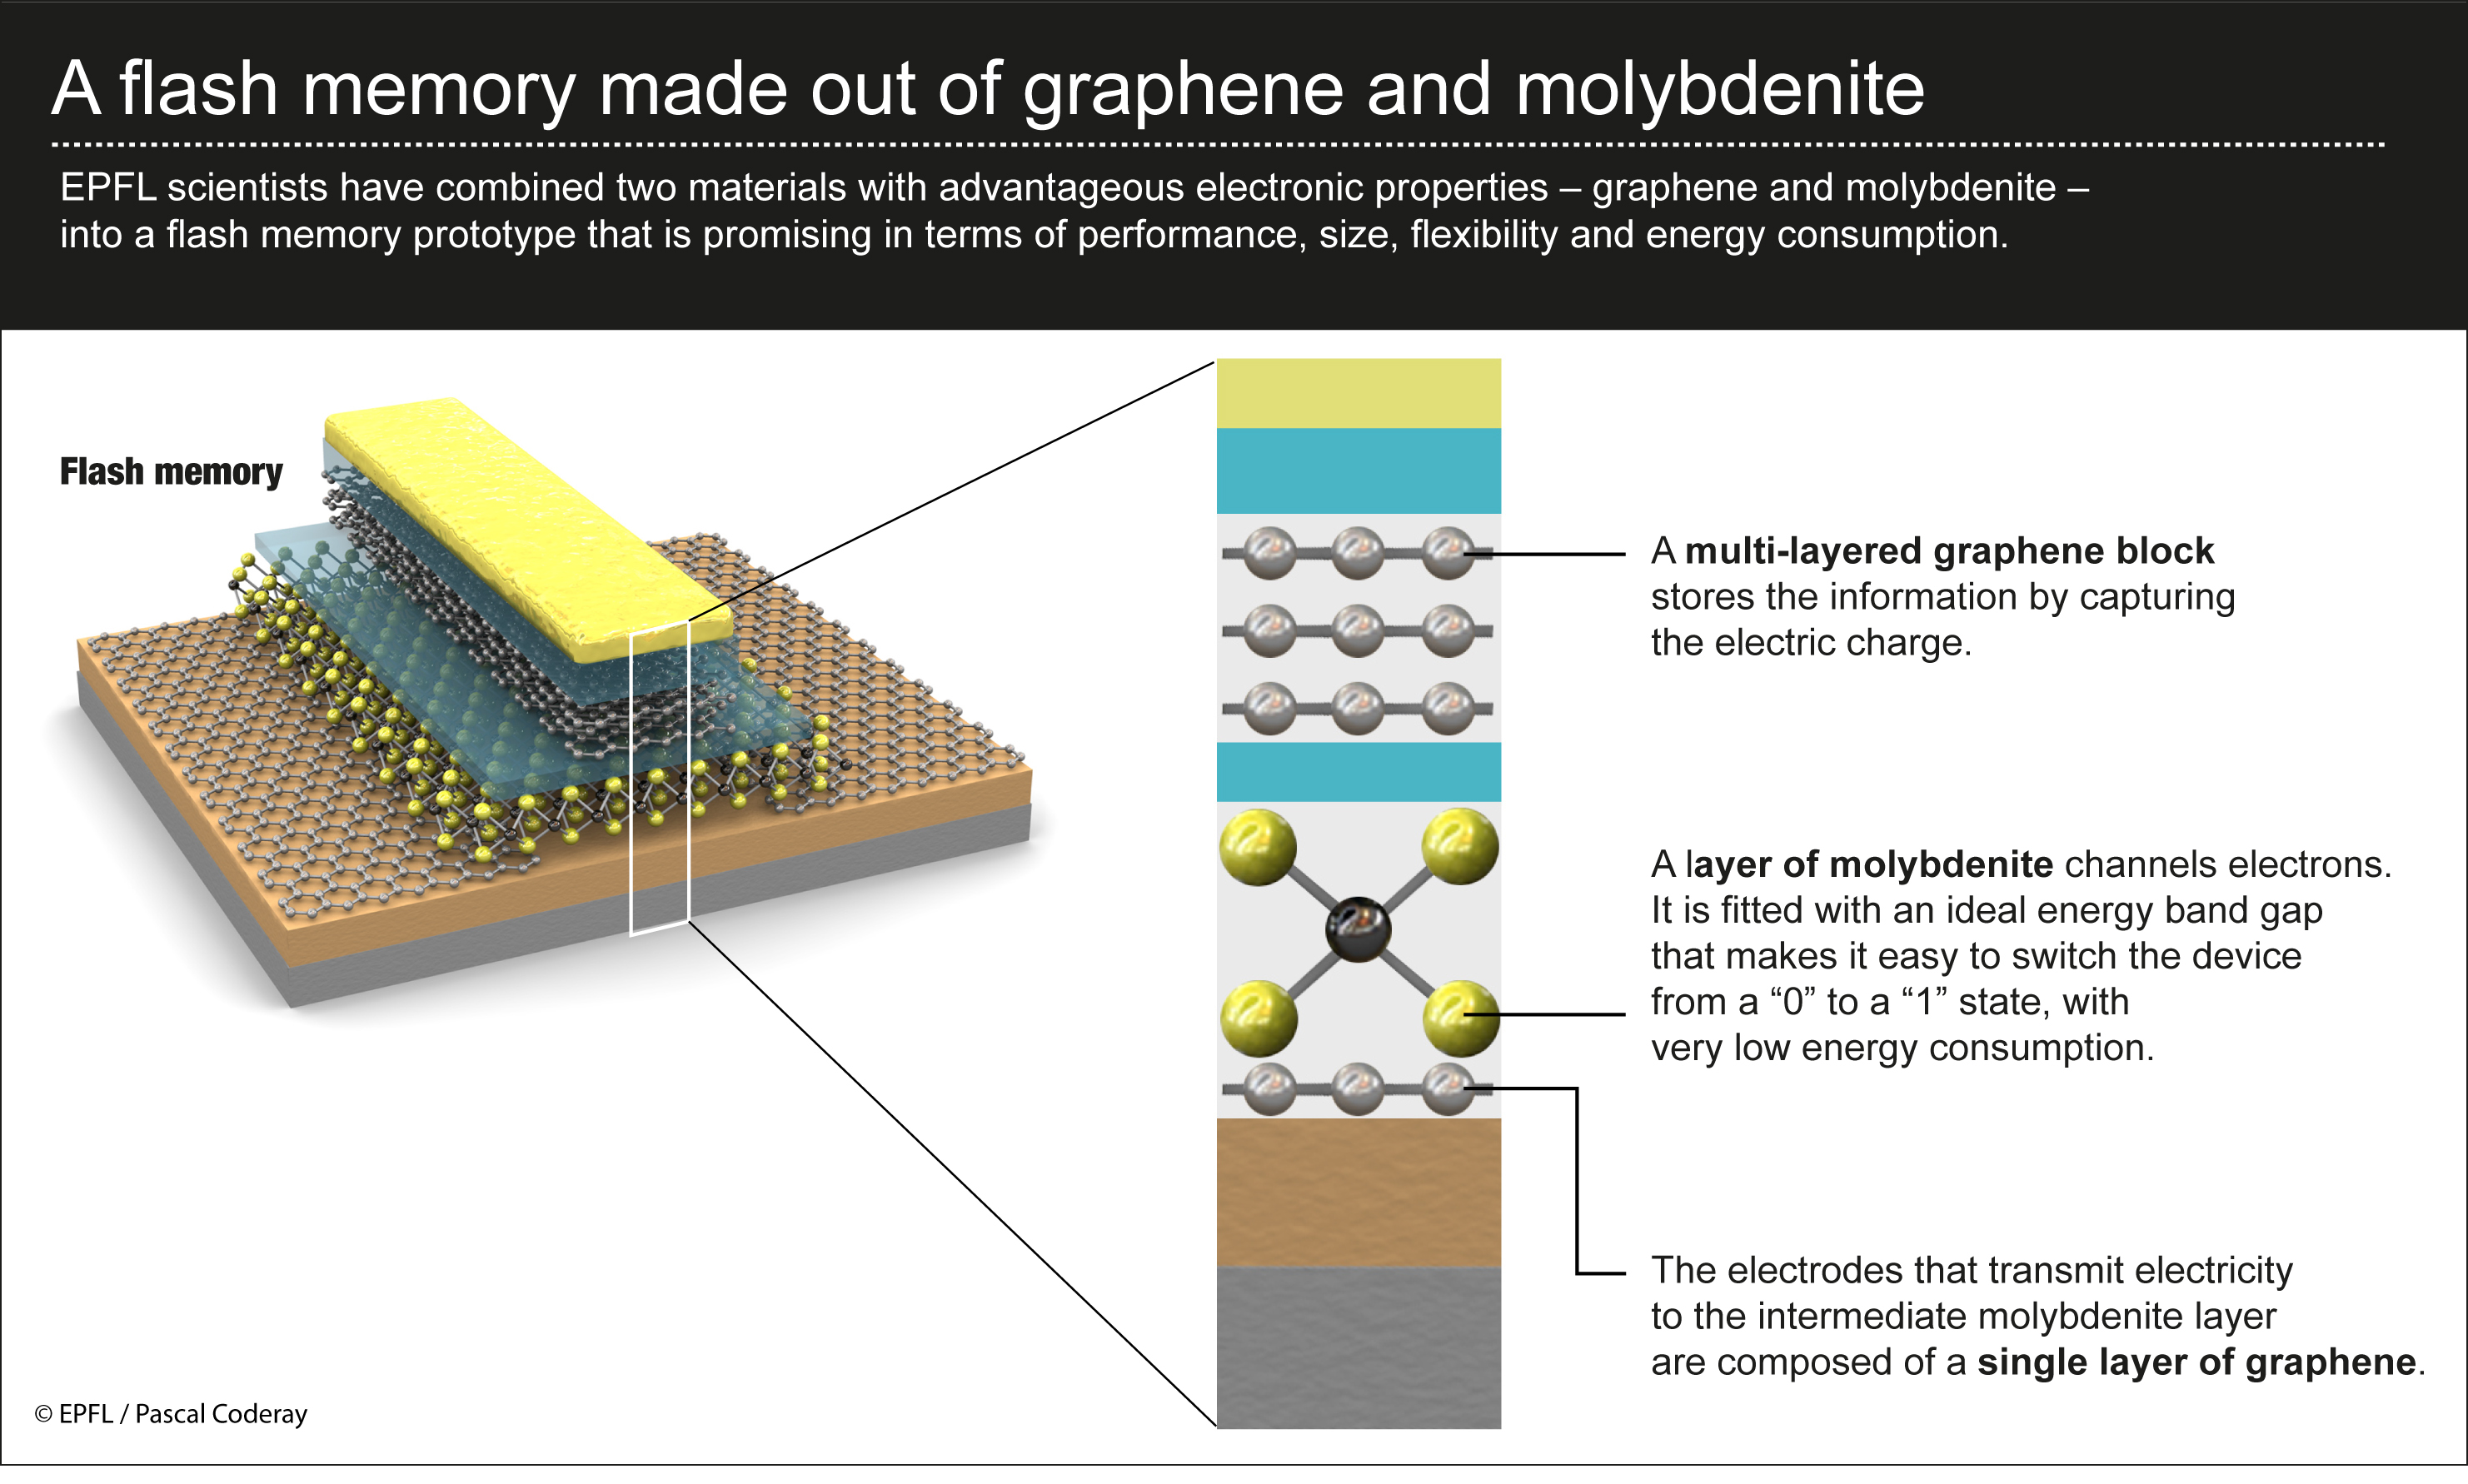 Fantastic Flash Memory Combines Graphene And Molybdenite Integrated Circuits Have Revolutionized The World Of Electronics